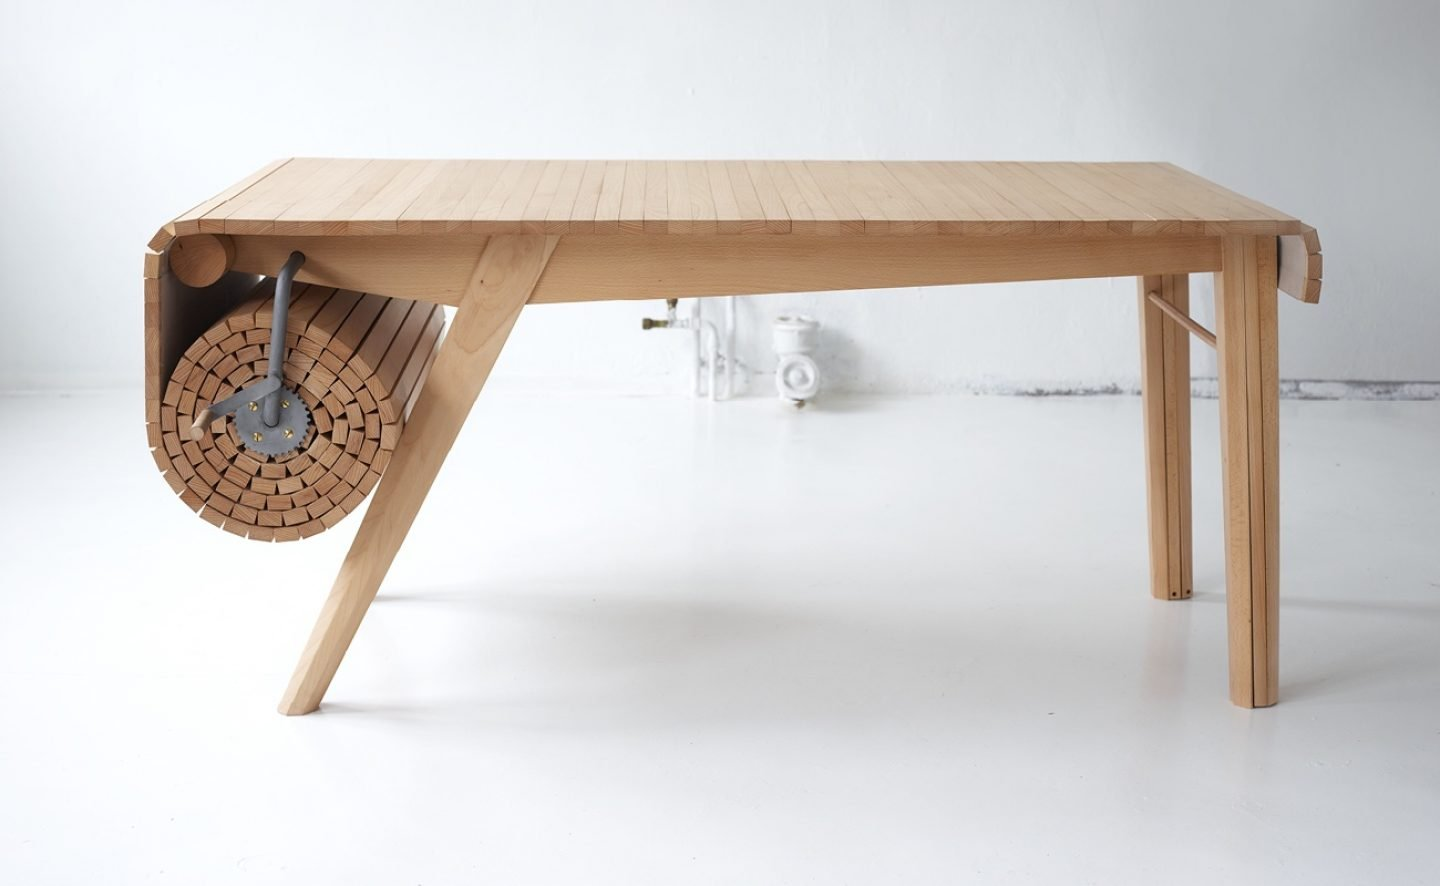 Design_Roll-out_Table_Marcus_Voraa_IGNANT_5